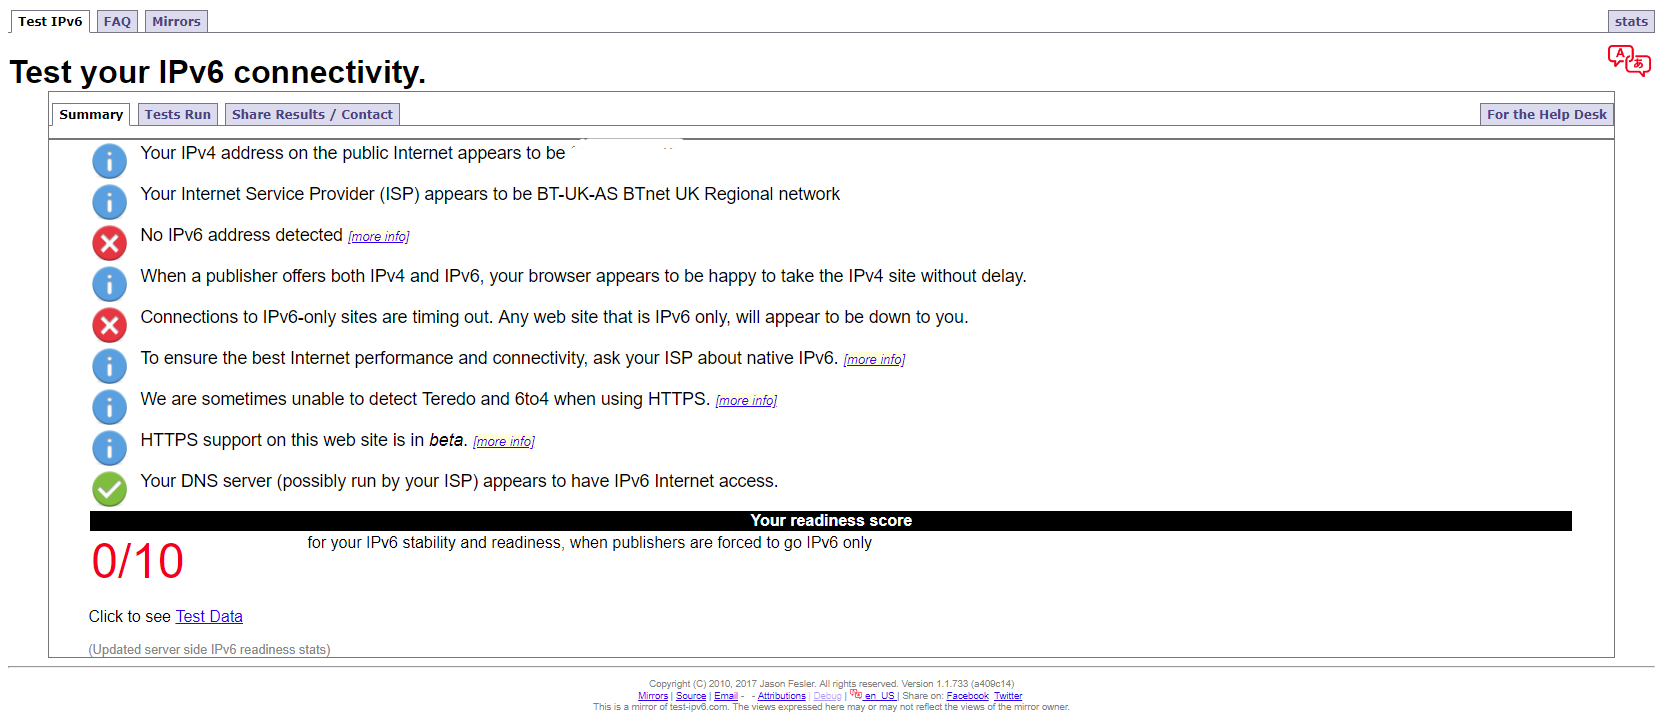 How to get IPv6 with a TP-Link Router on BT - Hoi Kay Li - Medium